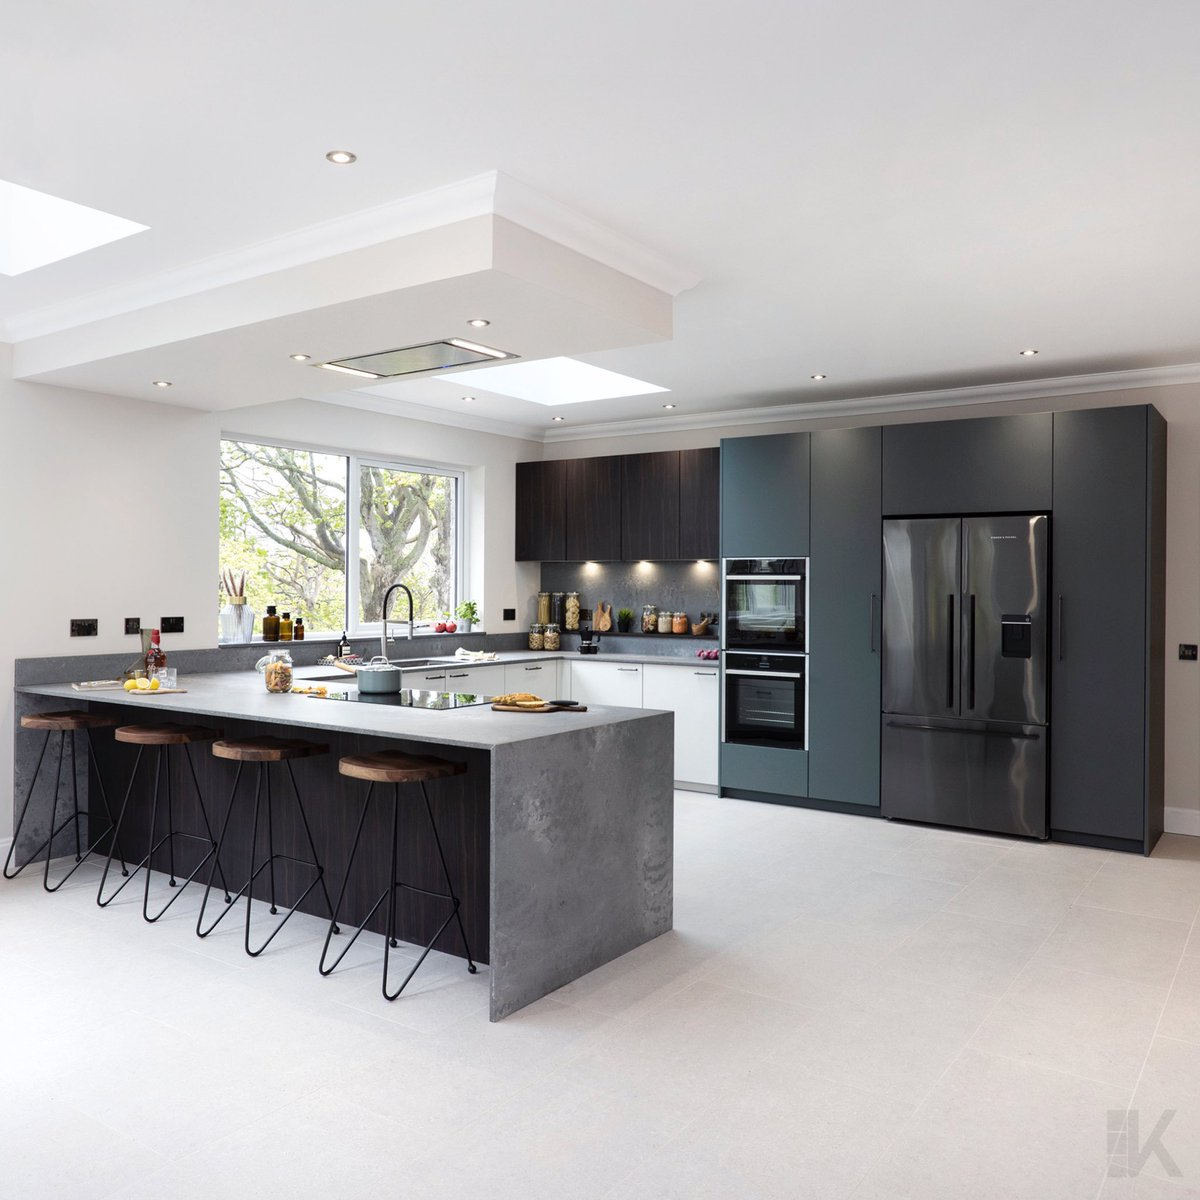 Another completed kitchen with a great mix of materials and tones. An impressive family room with ample space for even the most avid home cooks. ⠀⠀⠀⠀⠀⠀⠀⠀ 🟦🟦⬜️ 📸 scott clark photography uk #KBNM #Störmer #Edinburgh #Caesarstone #Neff #interiors #Scottishhomes